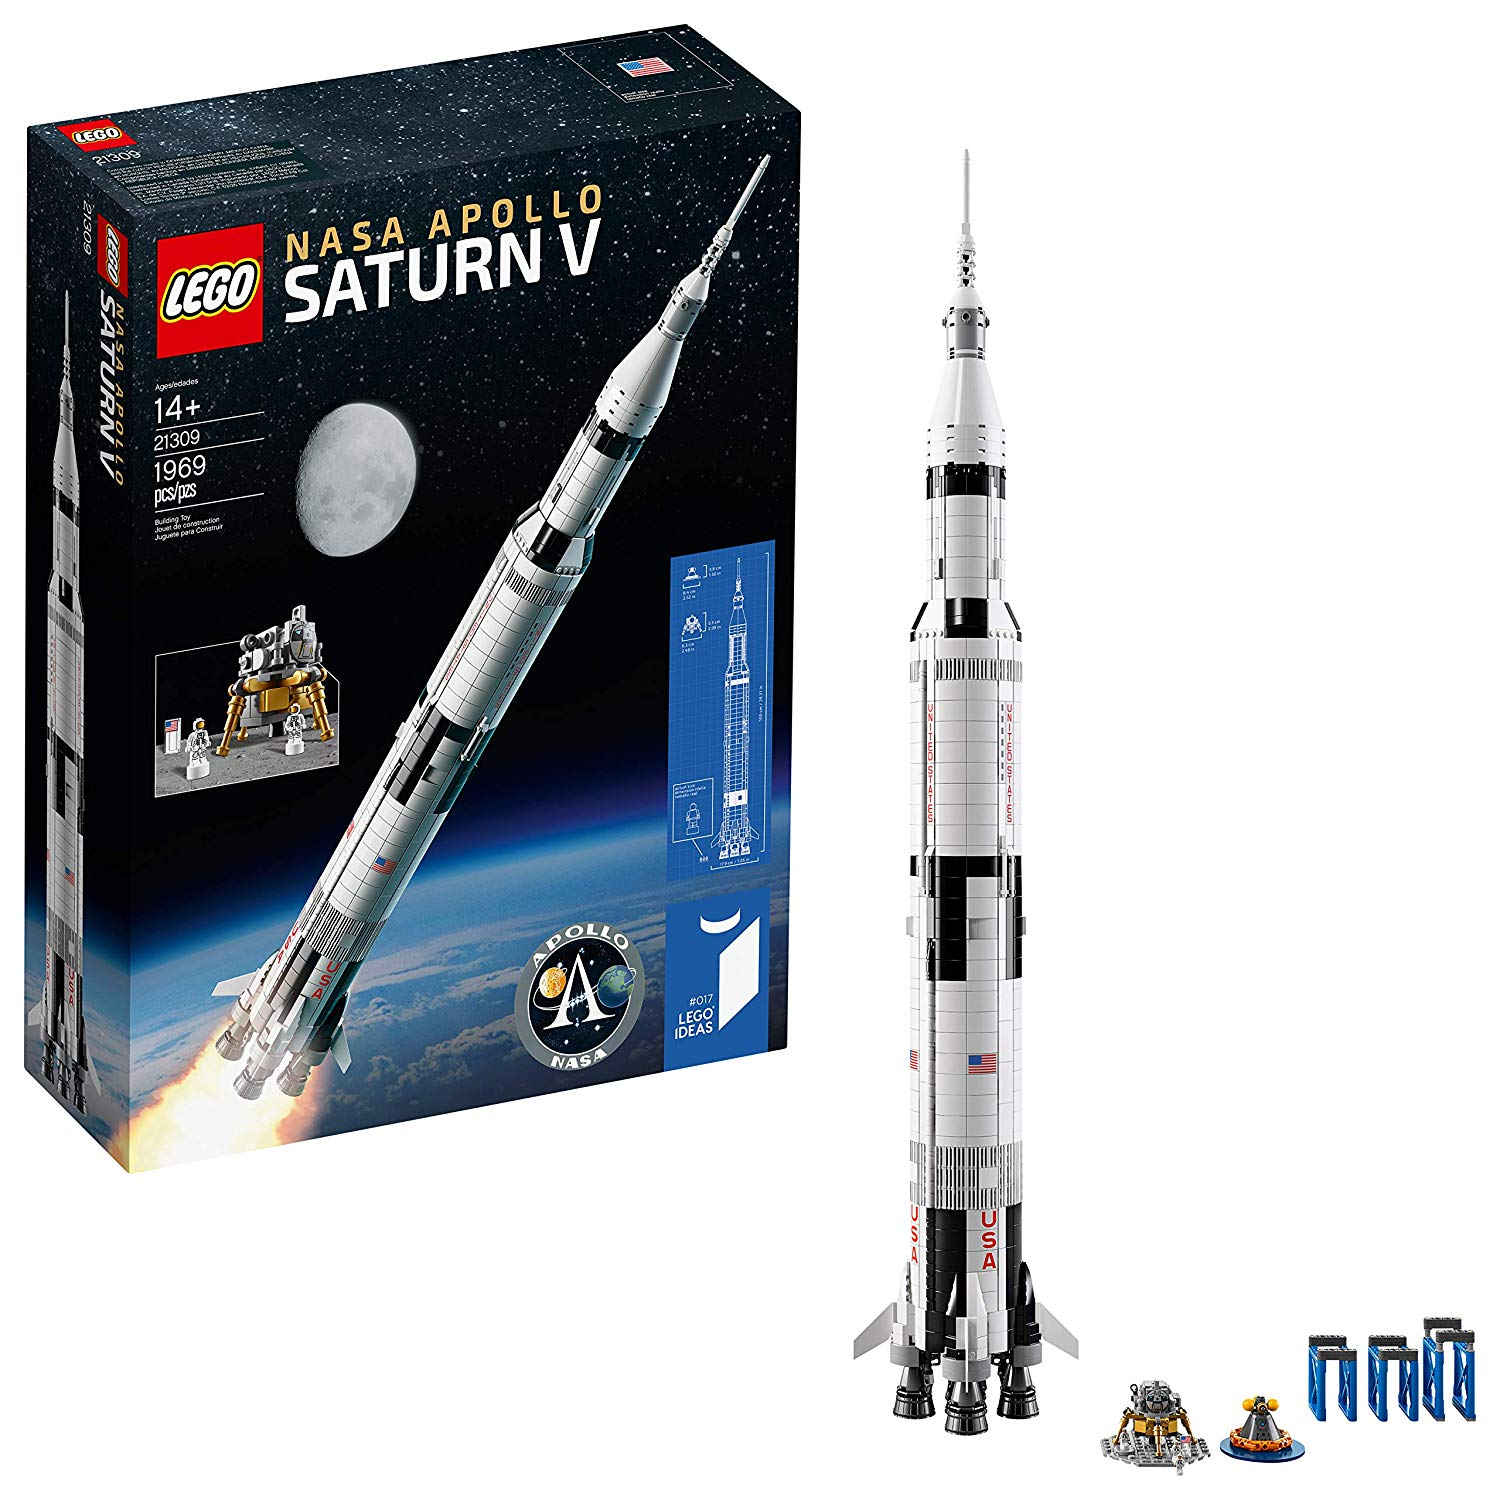 NASA Apollo Saturn V 21309 Building Kit